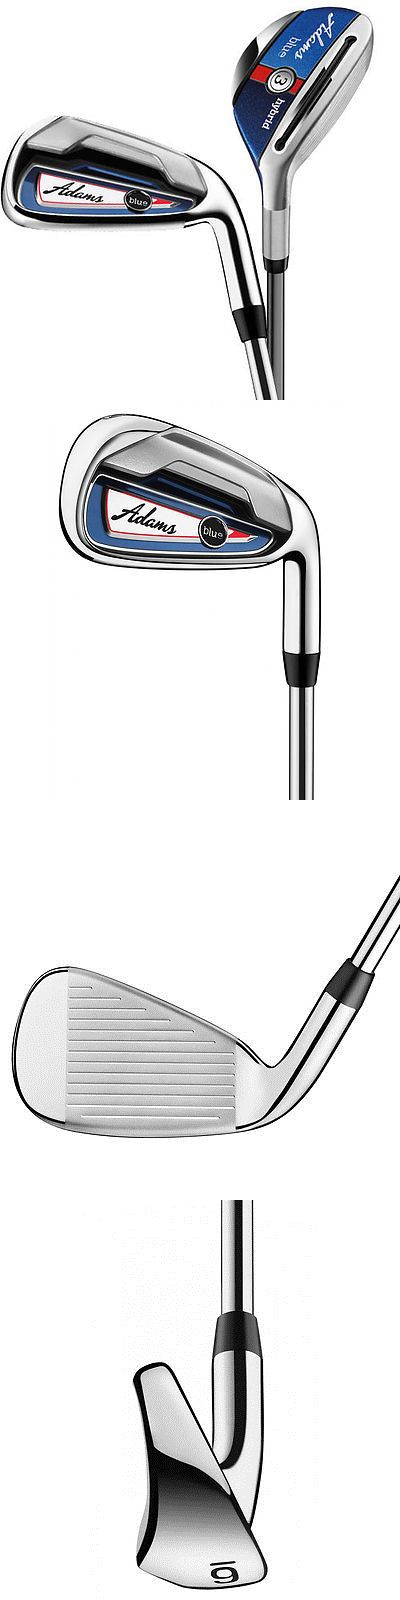 Golf Clubs 115280: New Adams Golf Blue Hybrid Combo Irons - Choose Set Composition And Flex BUY IT NOW ONLY: $279.99